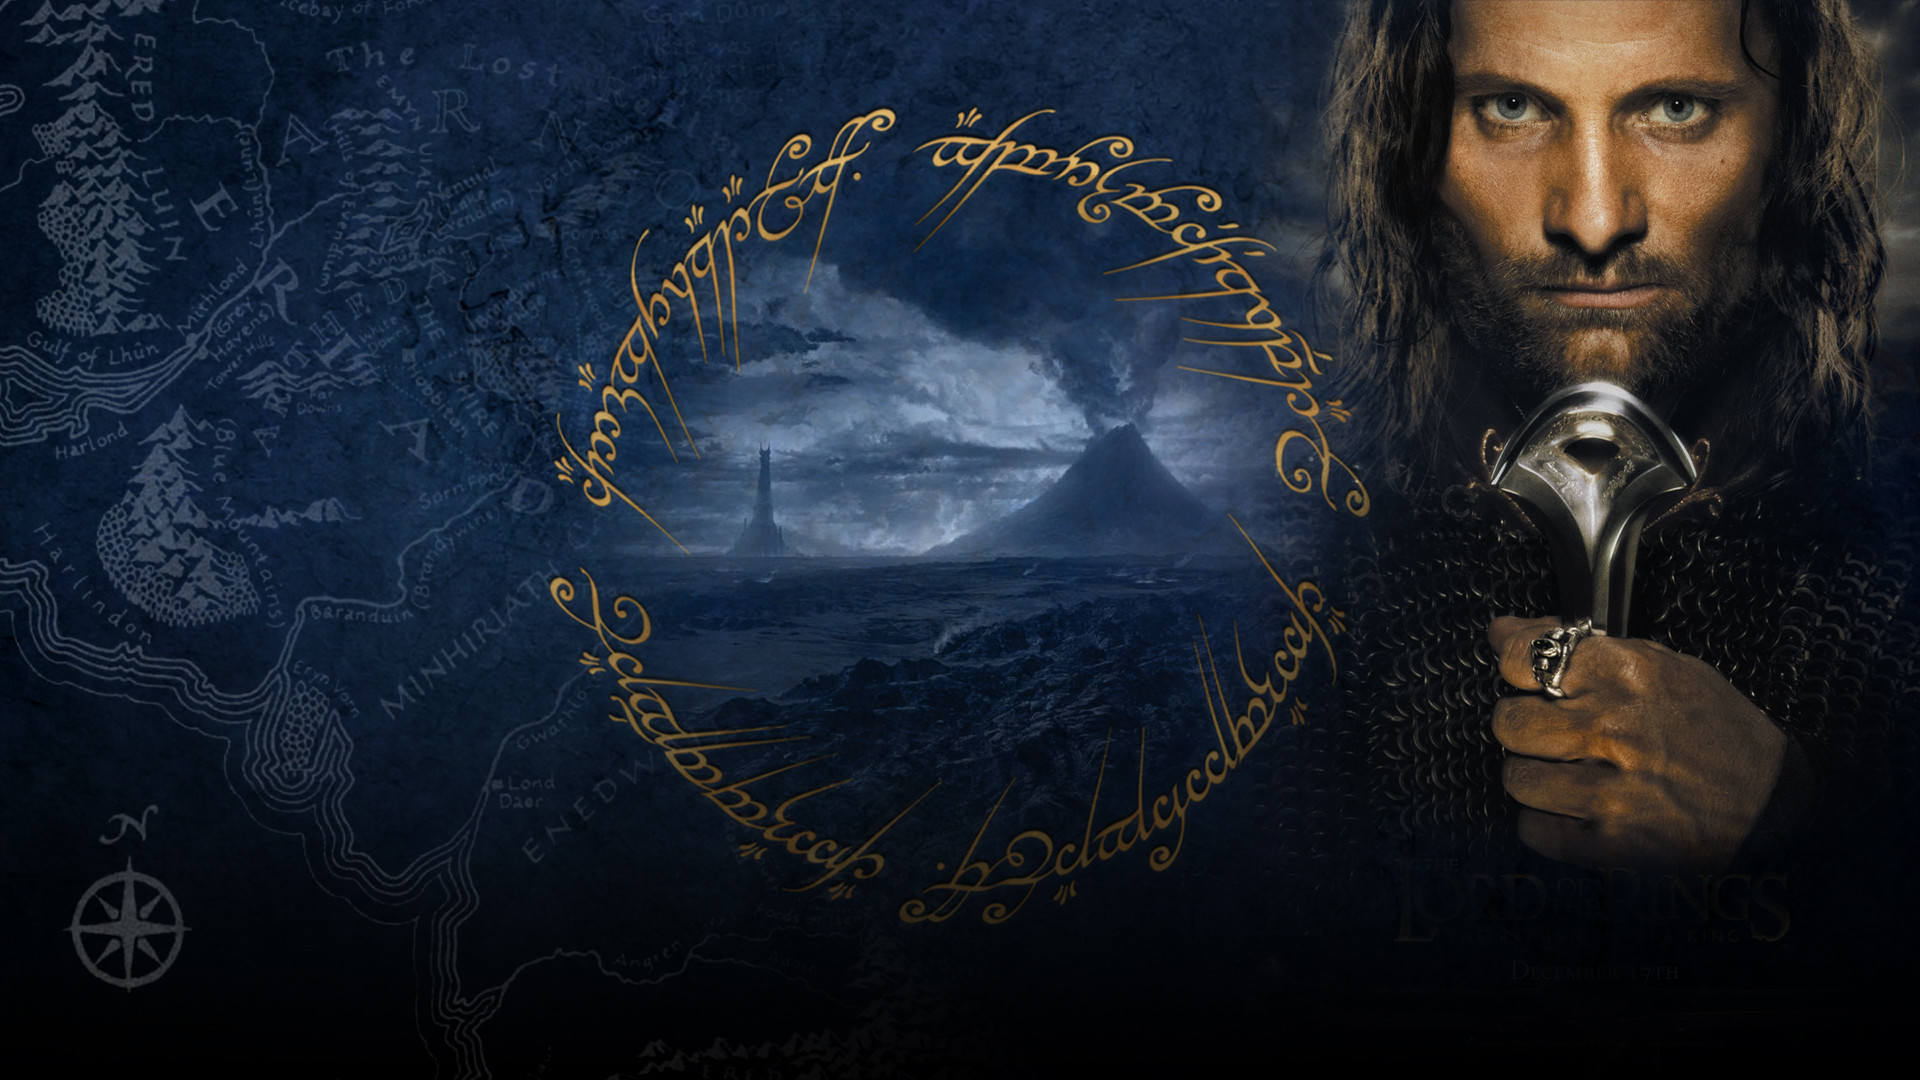 LORD OF THE RINGS RETURN KING fantasy wallpaper 1920x1080 102819 1920x1080